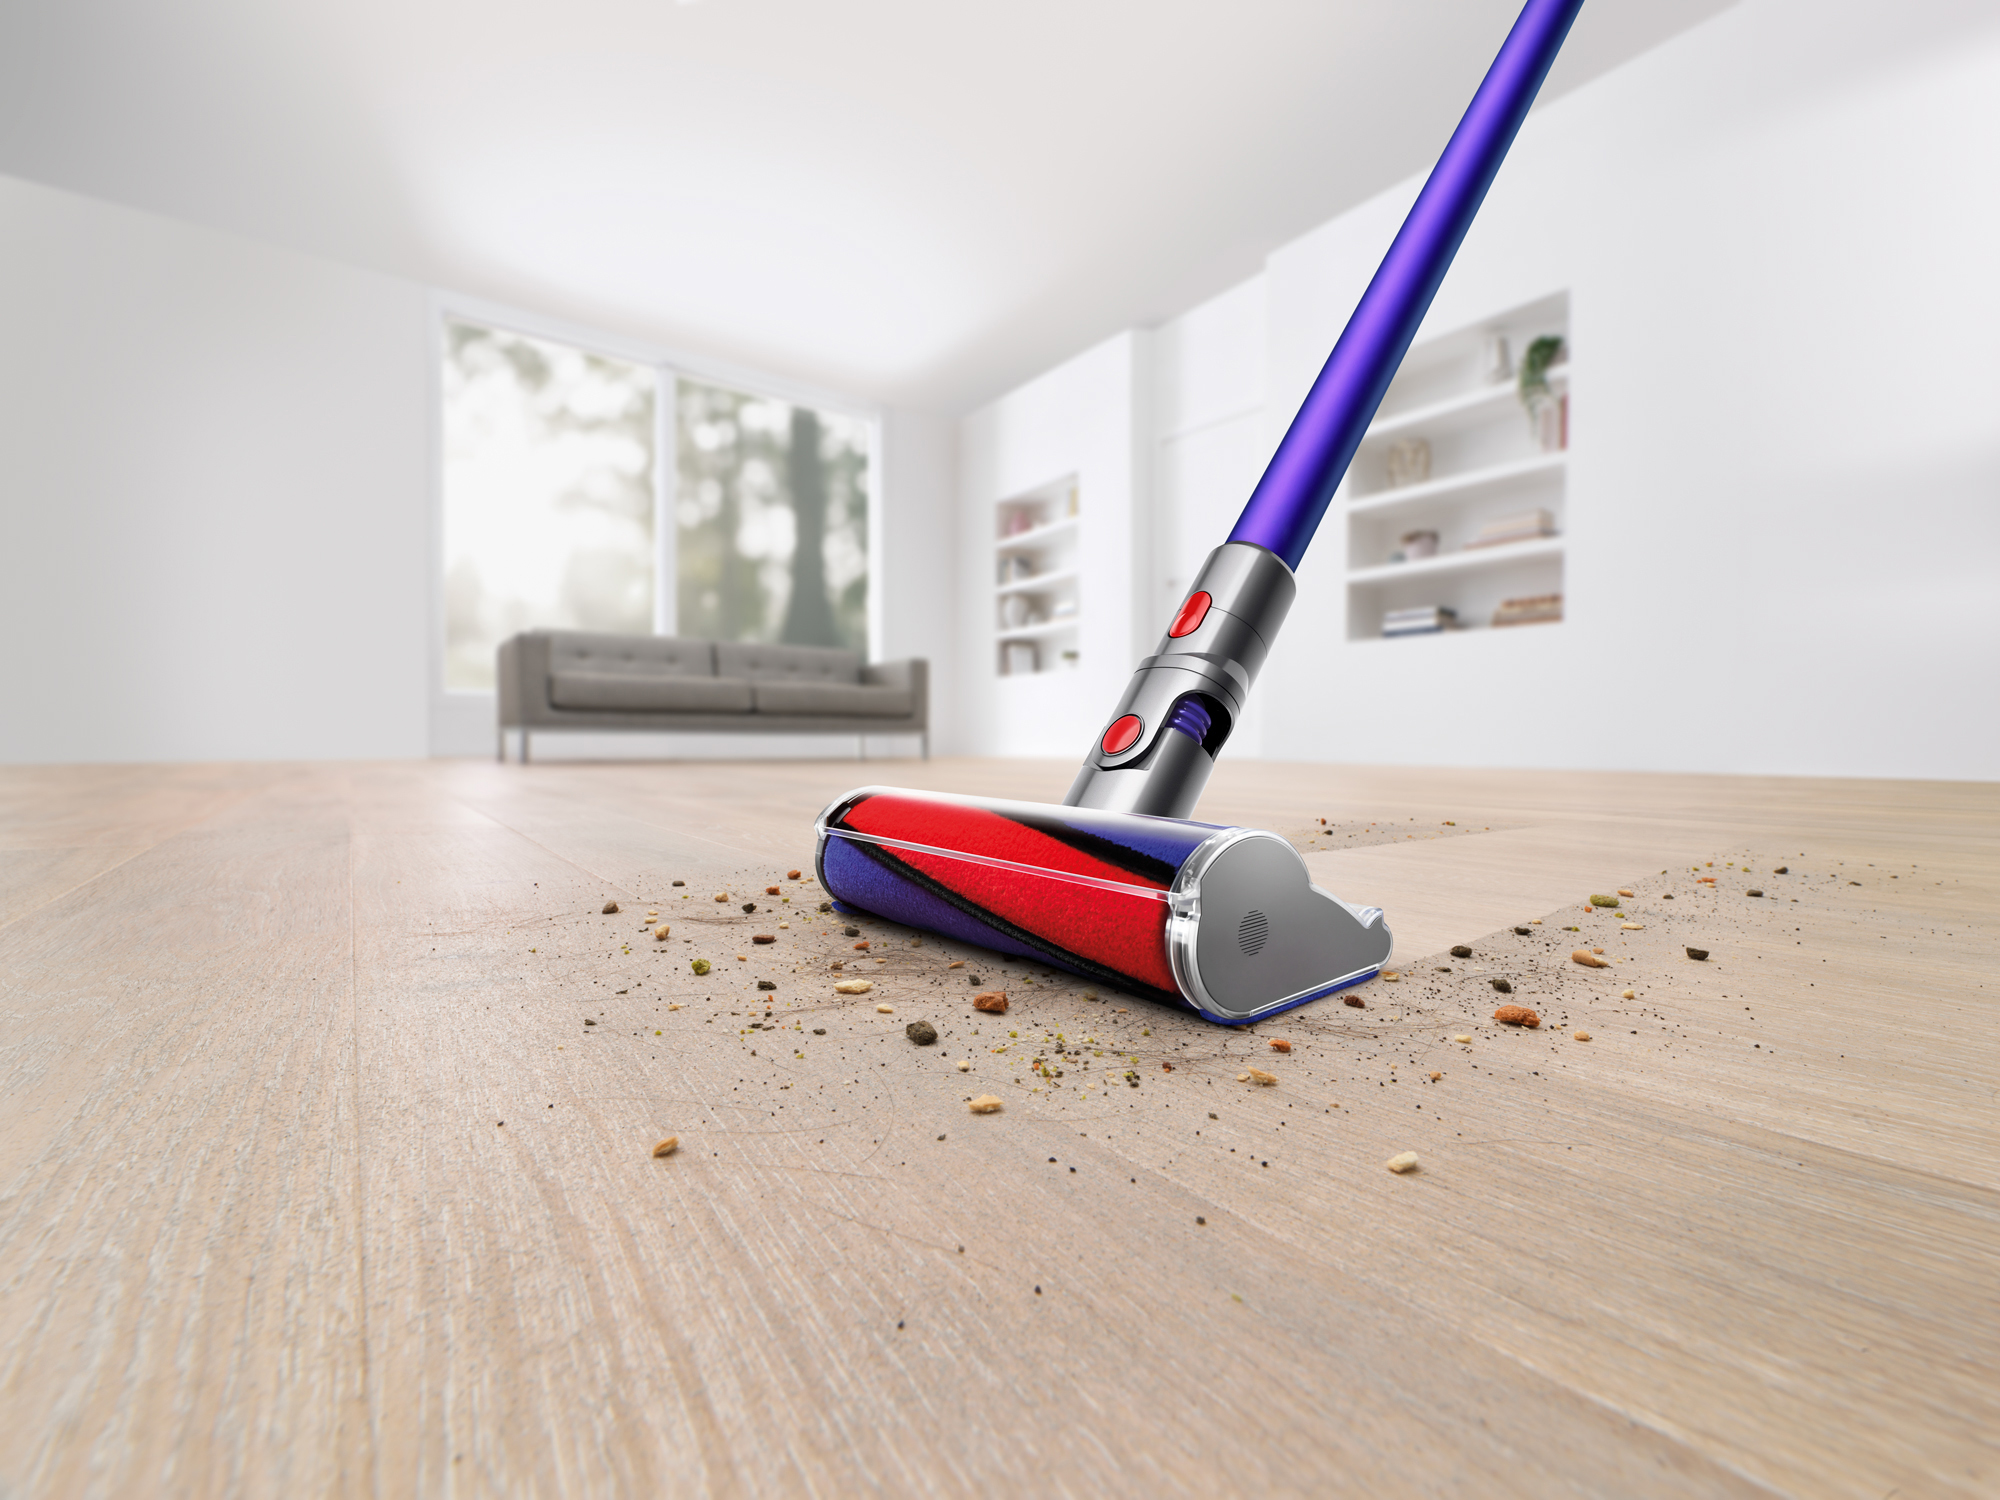 The Dyson V11 Absolute Pro Cordless Stick Vacuum is shown cleaning a hardwood floor in a white room. It makes a clean sweep through the dust and debris on the floor, leaving nothing behind it.